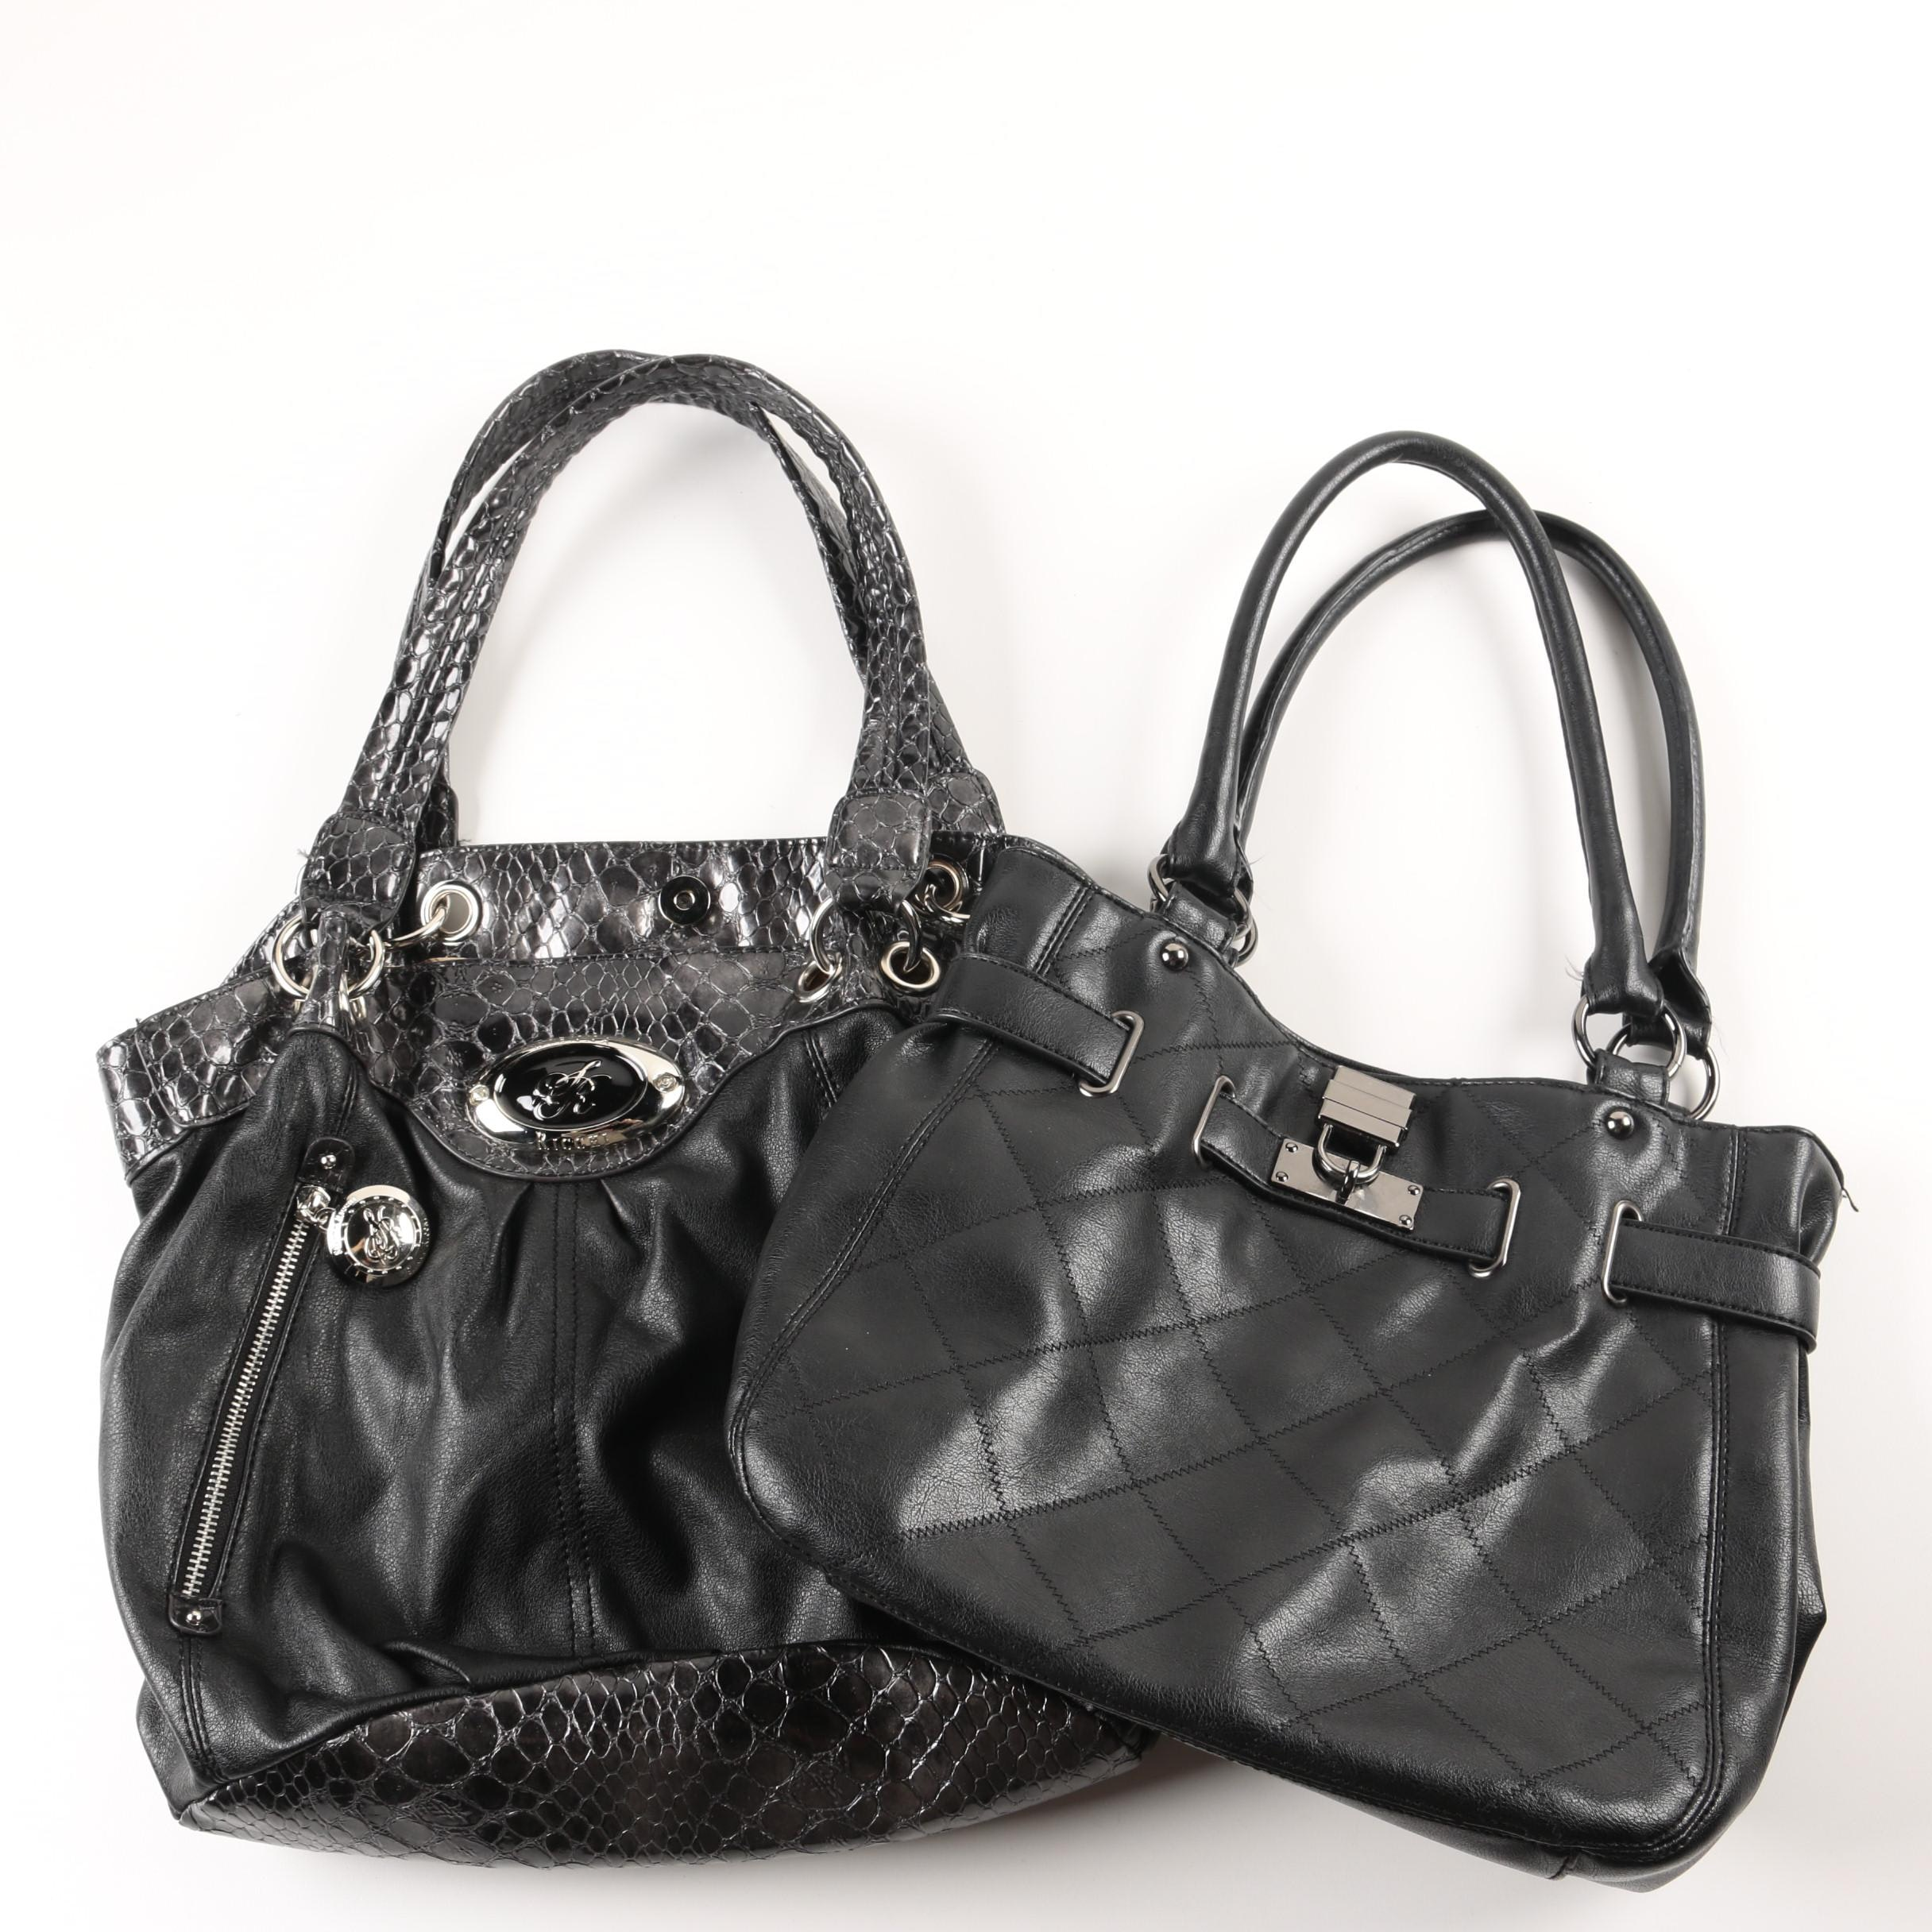 Leather Handbags Including Relic